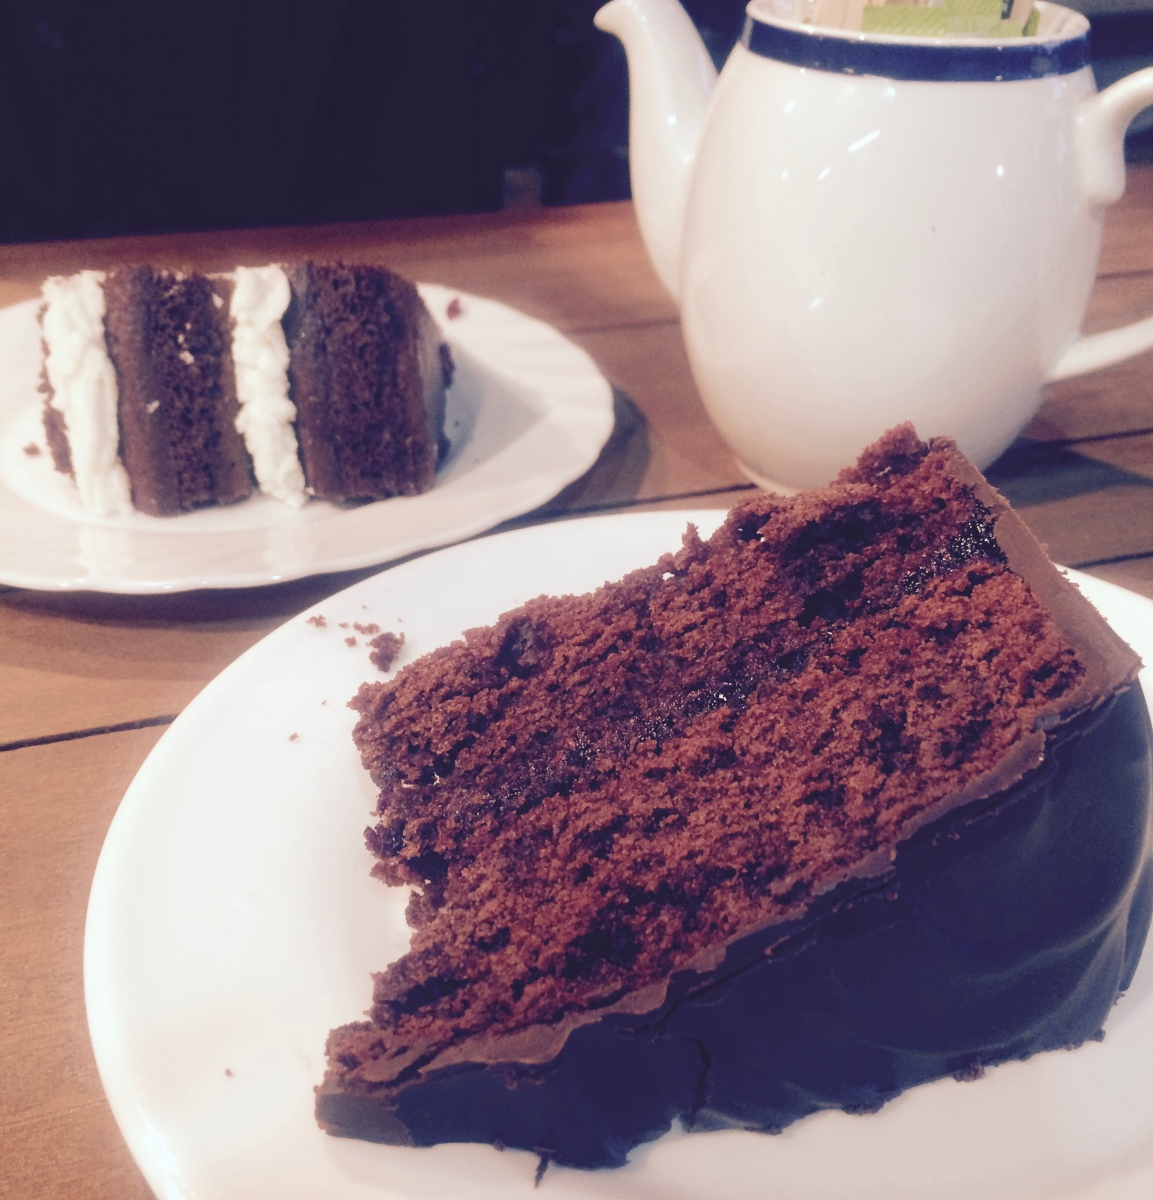 Vegan London: Oasis Cafe at Harvest E8